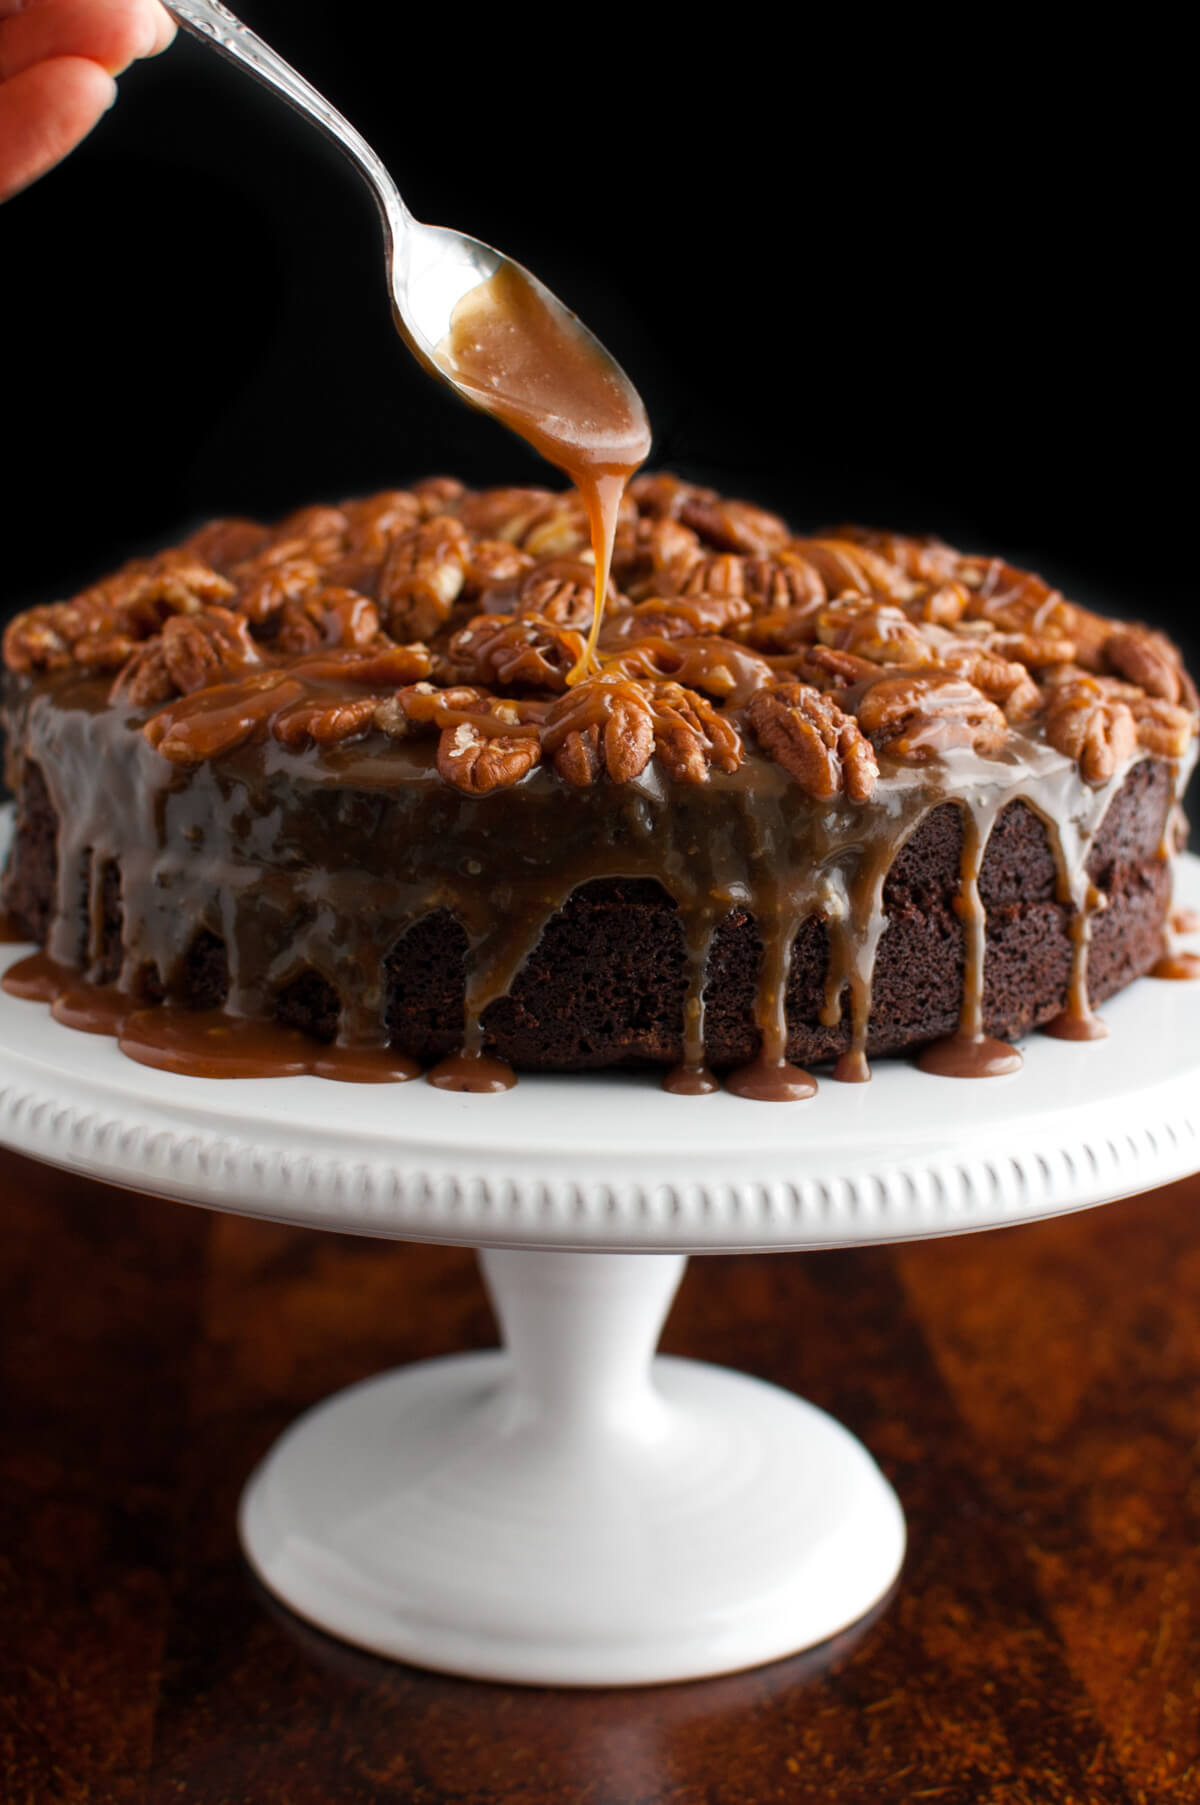 Caramel sauce being dripped on a chocolate cake topped with pecans and more caramel sauce.